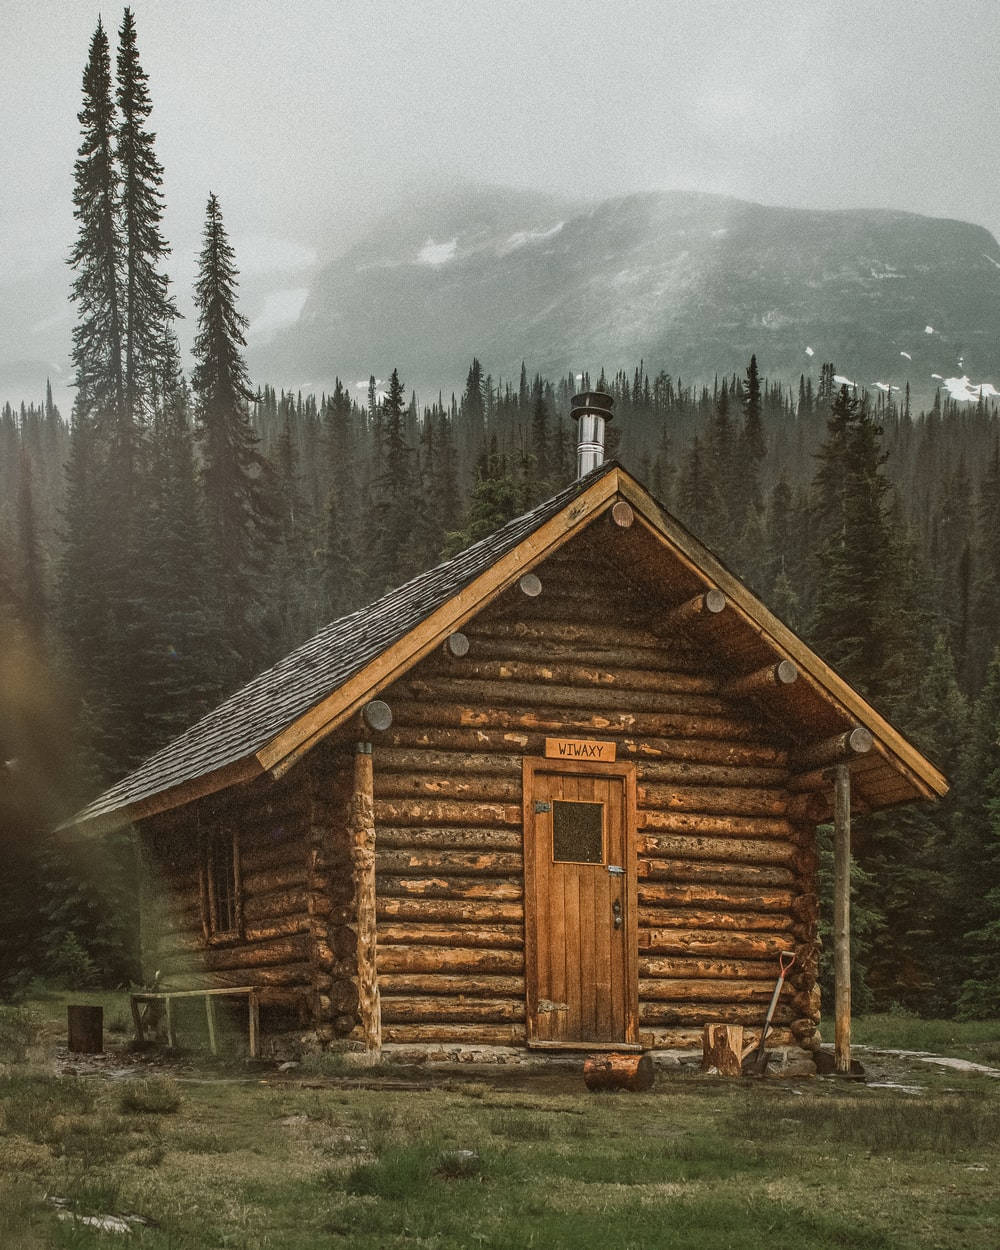 brown wooden cabin near trees during day